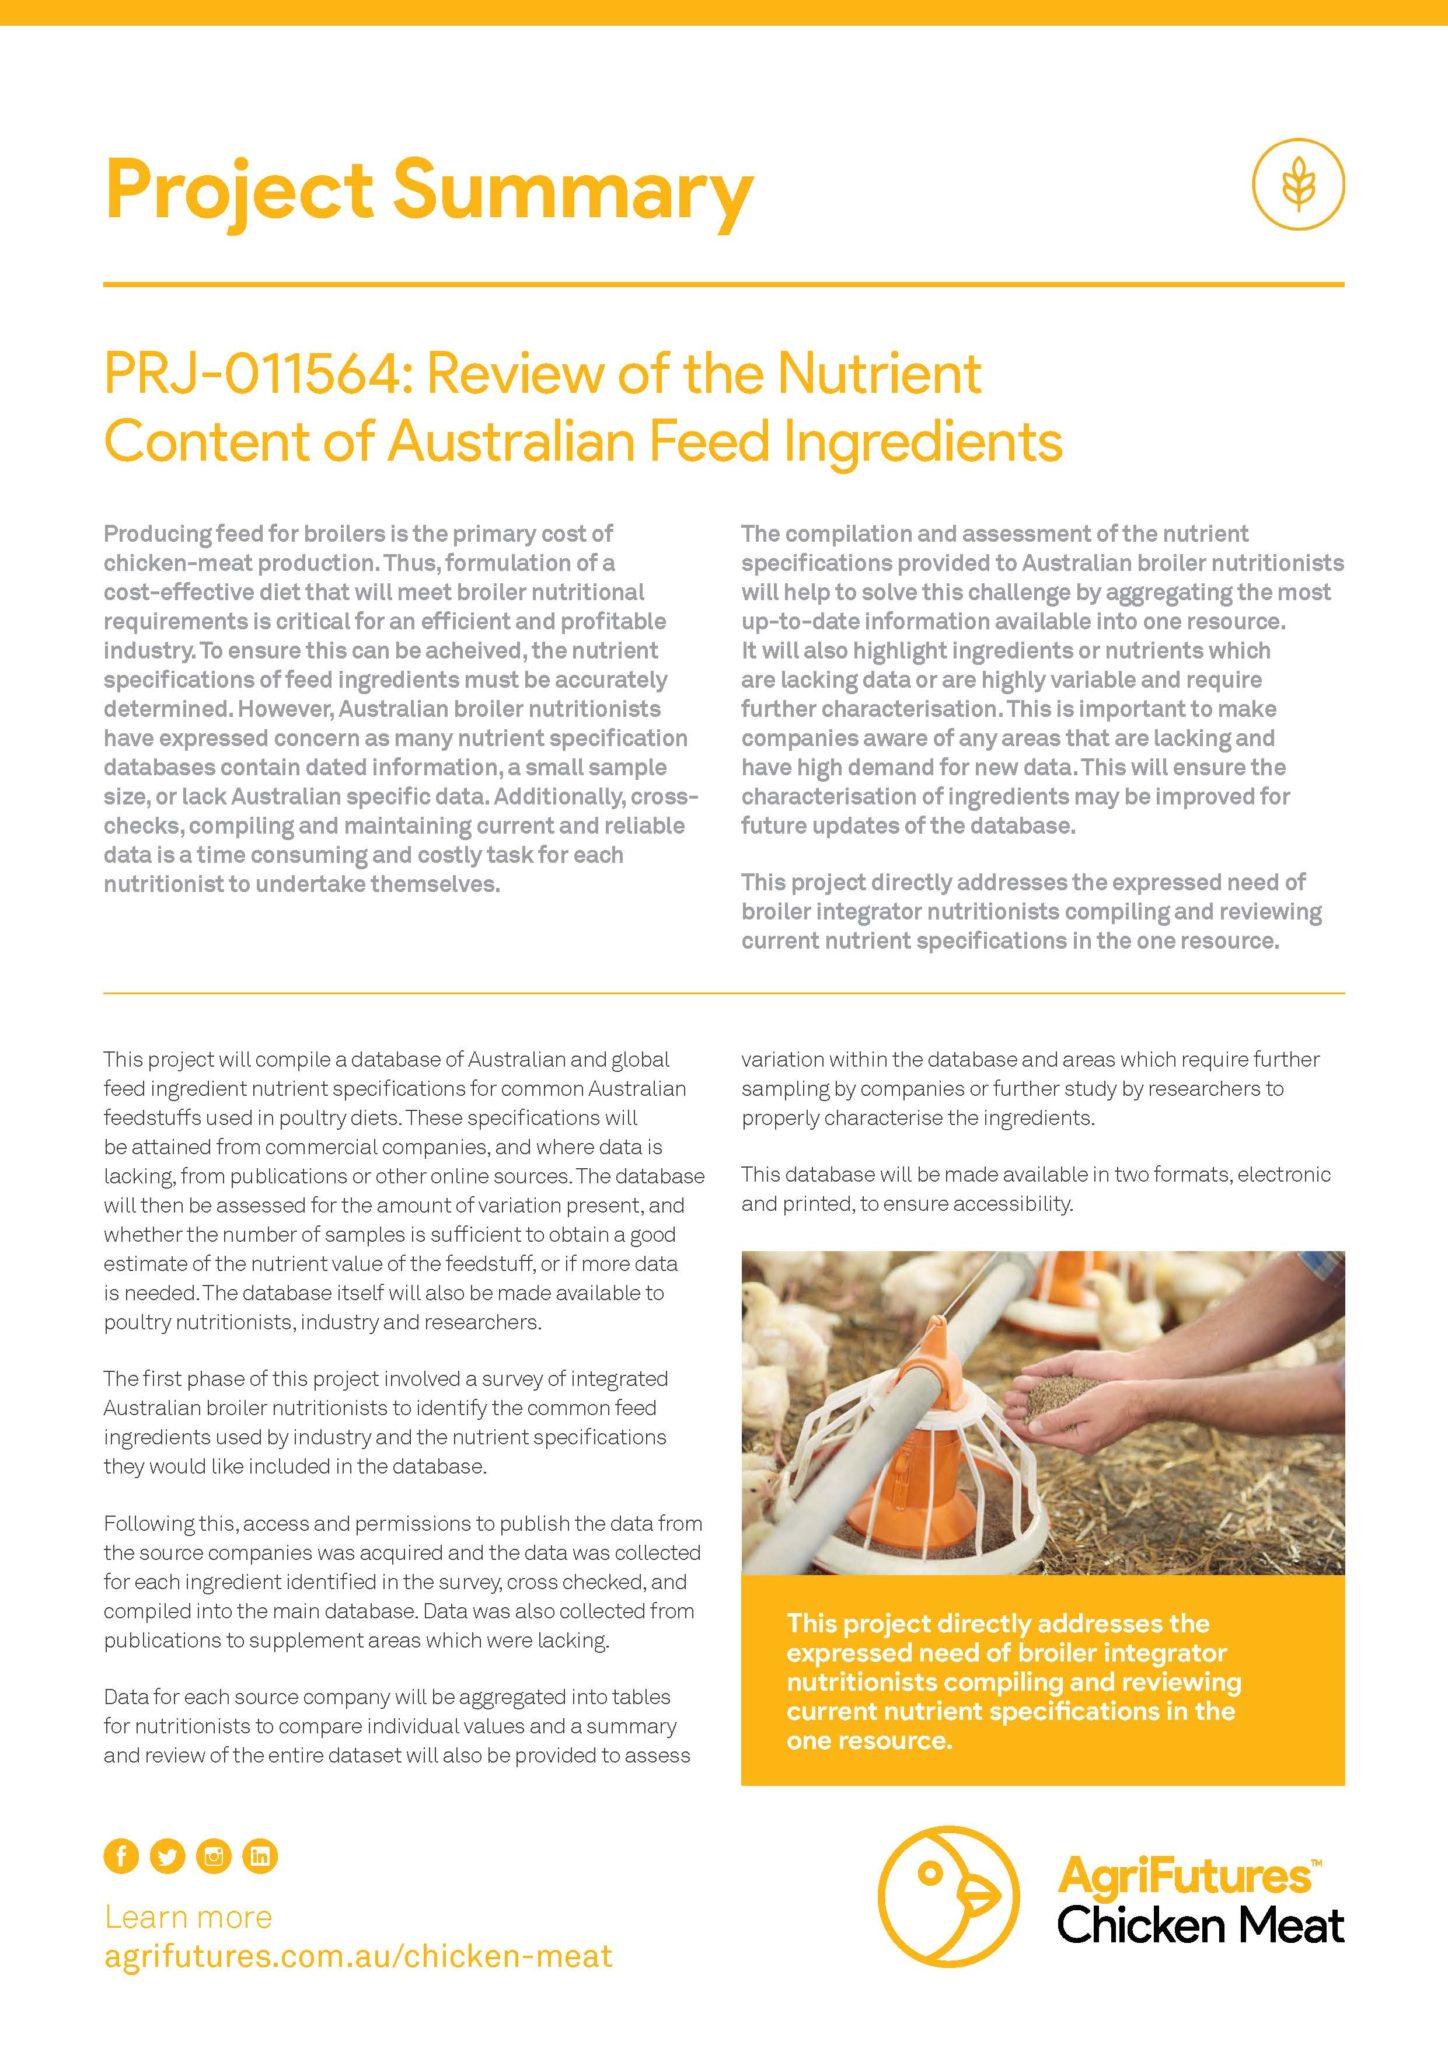 Project summary: Review of the Nutrient Content of Australian Feed Ingredients - image